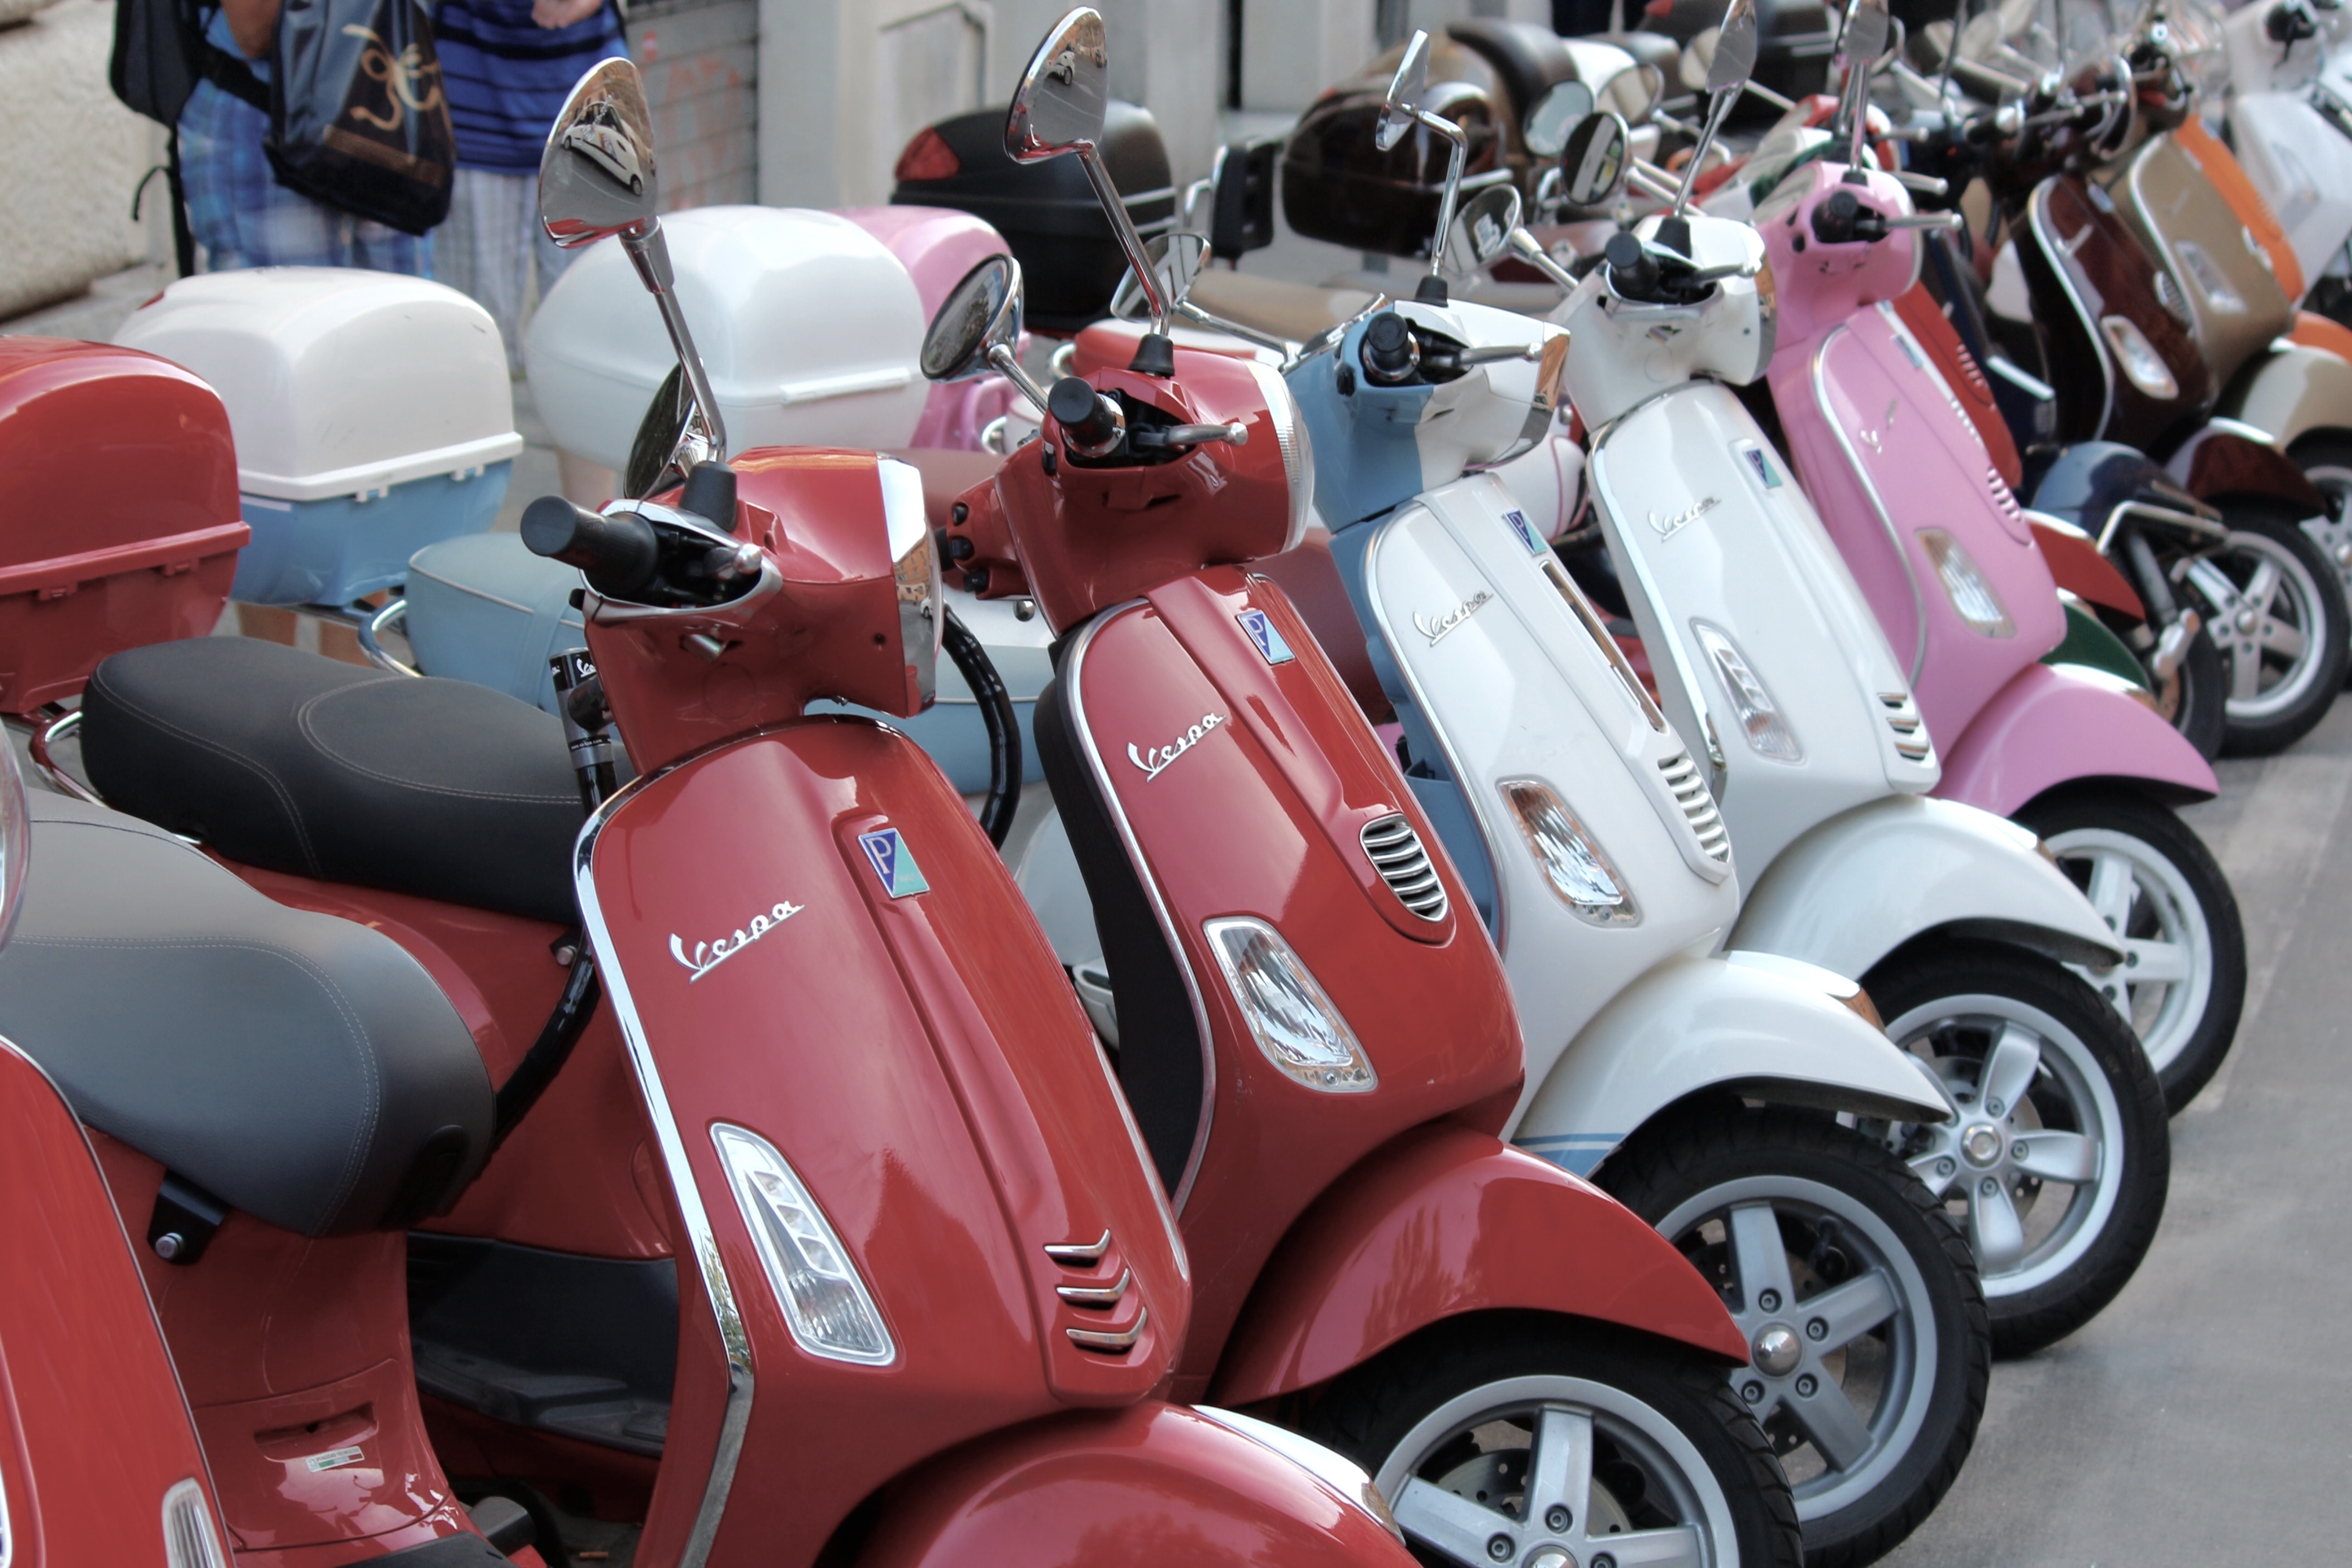 red, white, and pink automatic scooters